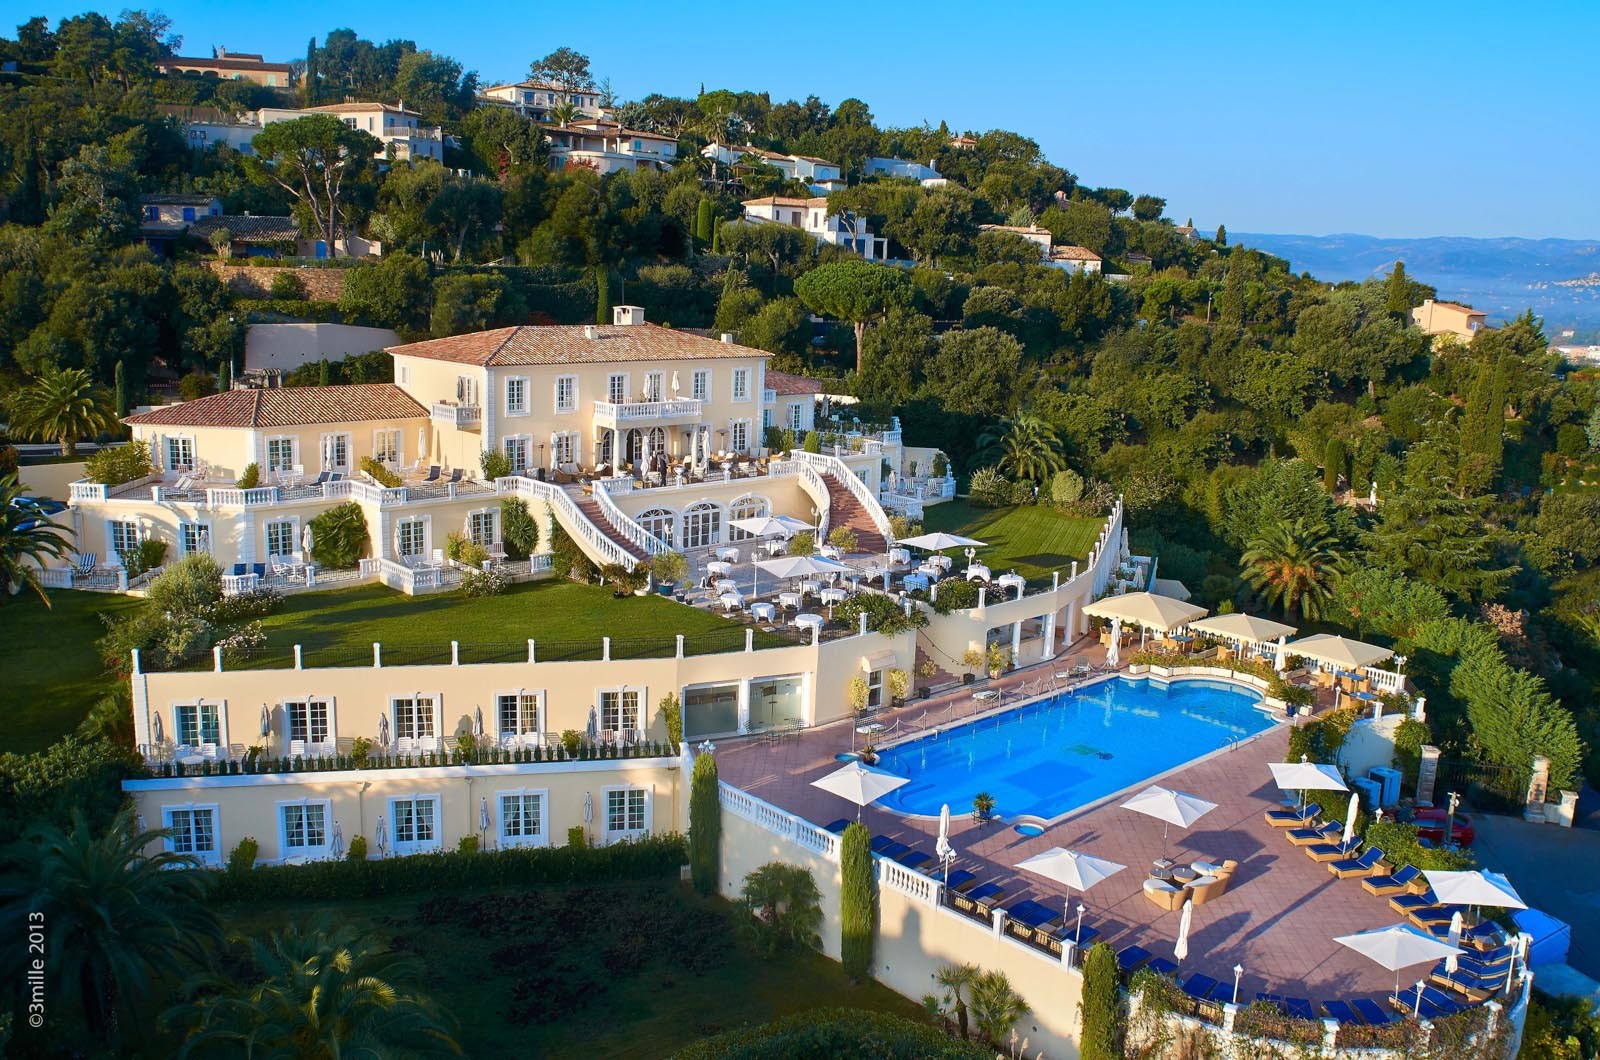 3 Reasons to Hire a Wedding Planner in the South of France